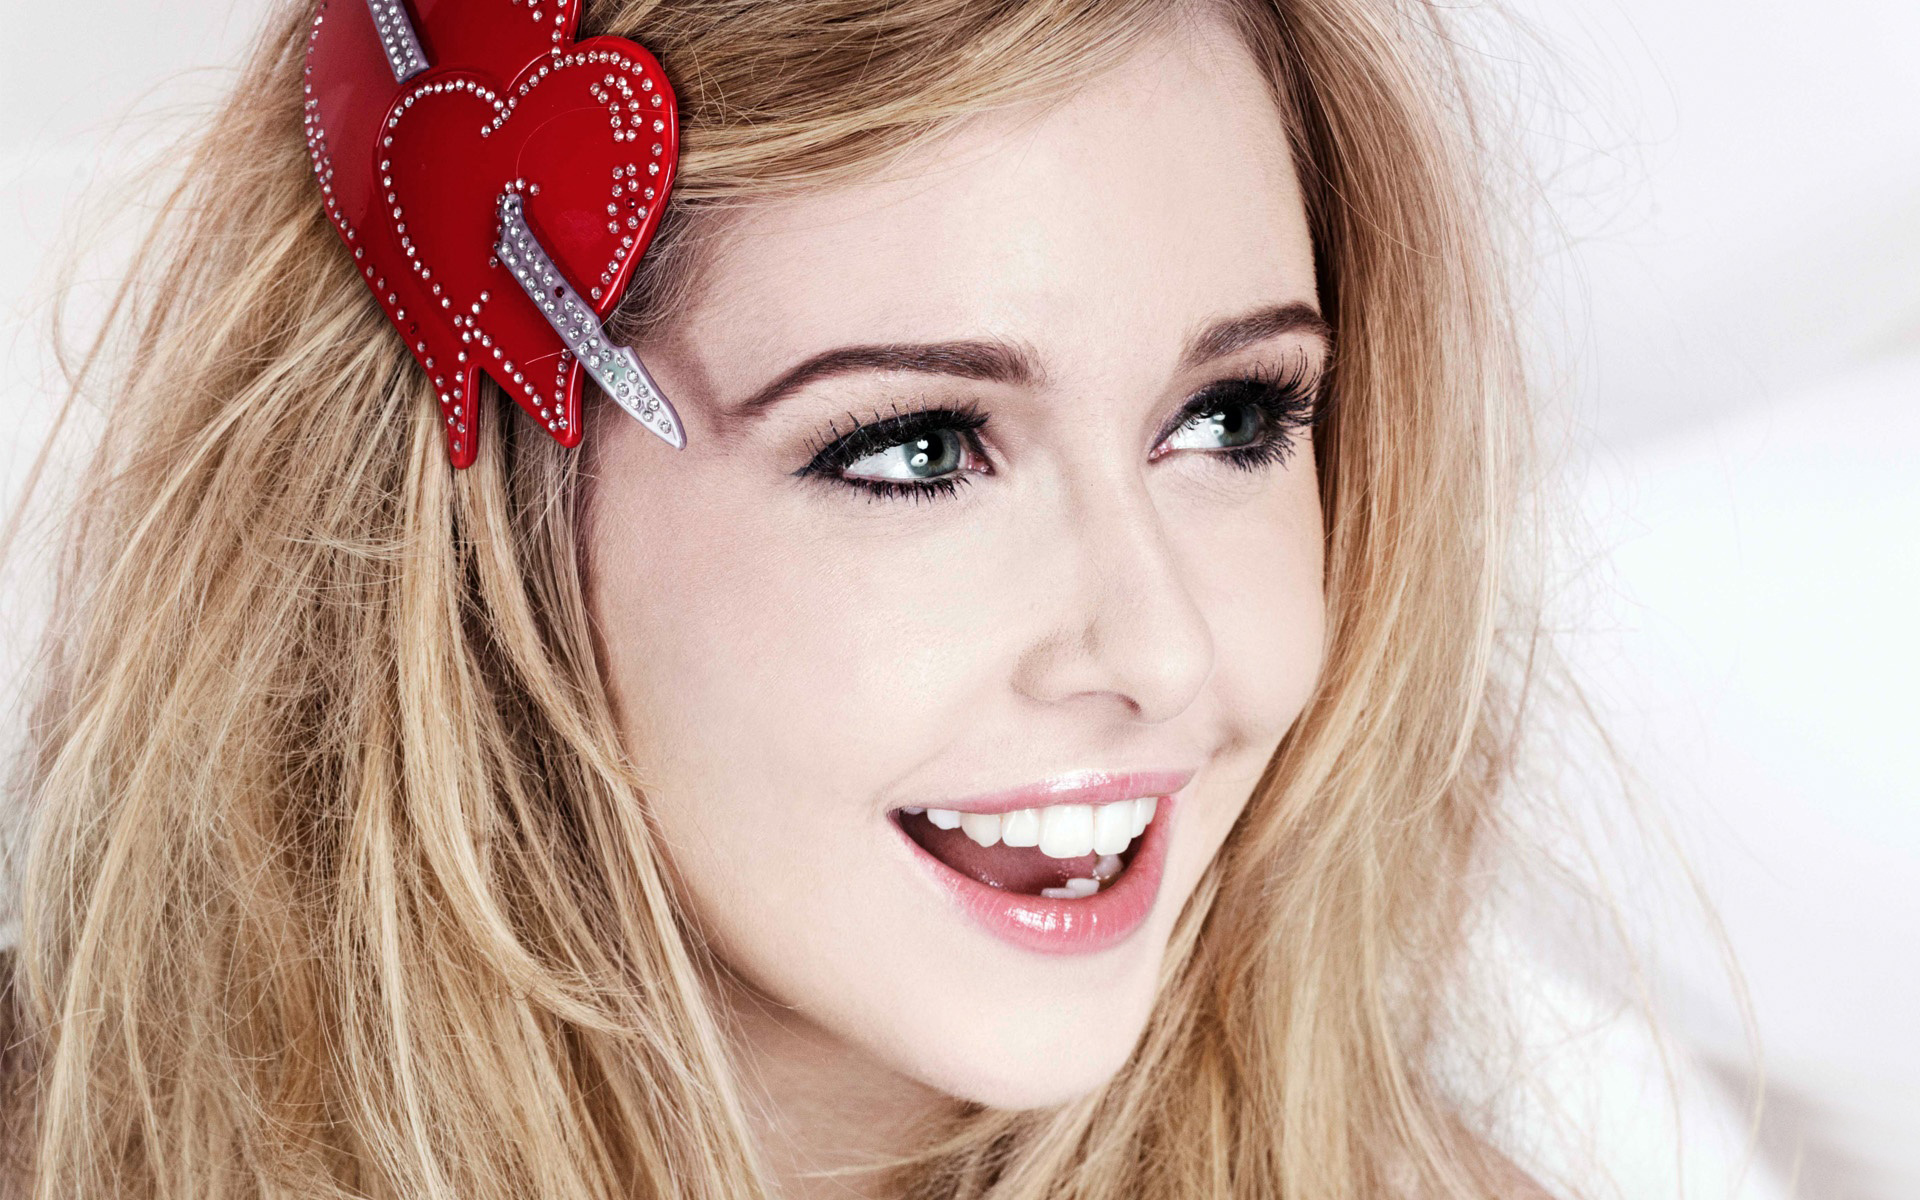 Diana Vickers 352.53 Kb